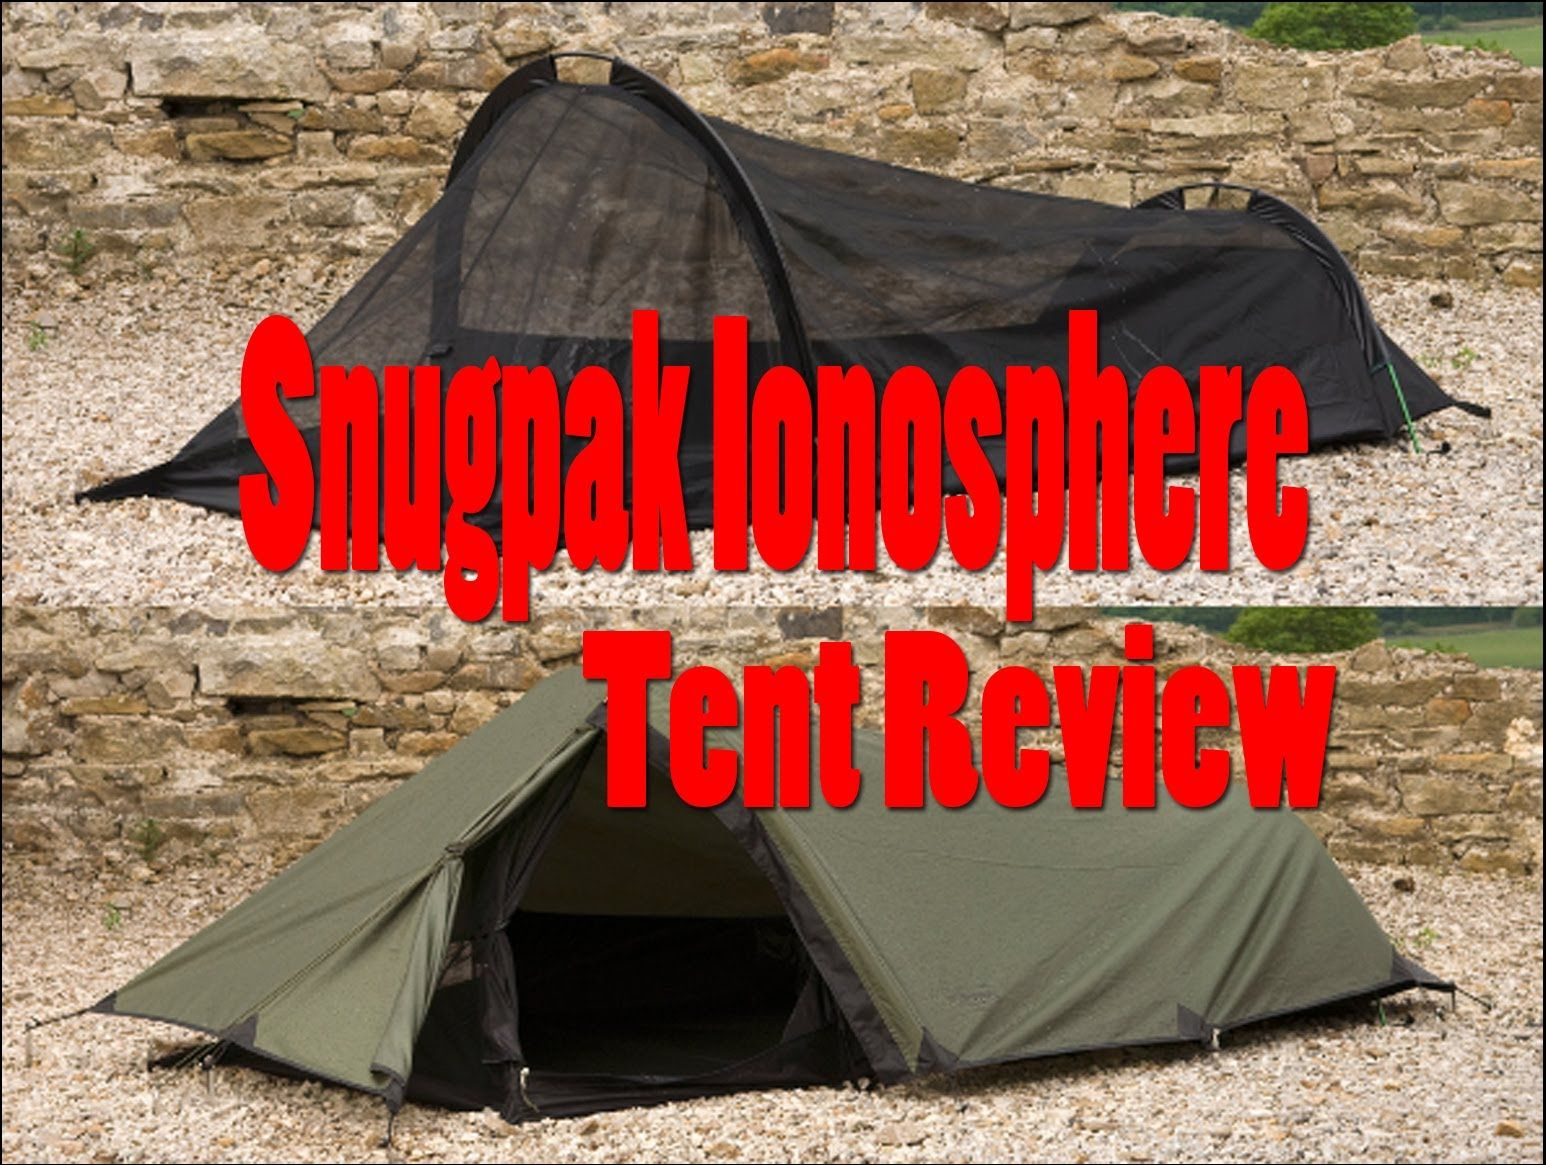 Really good Youtube review of the Snugpak Ionosphere 1-person Tent. Get the tent & Really good Youtube review of the Snugpak Ionosphere 1-person Tent ...